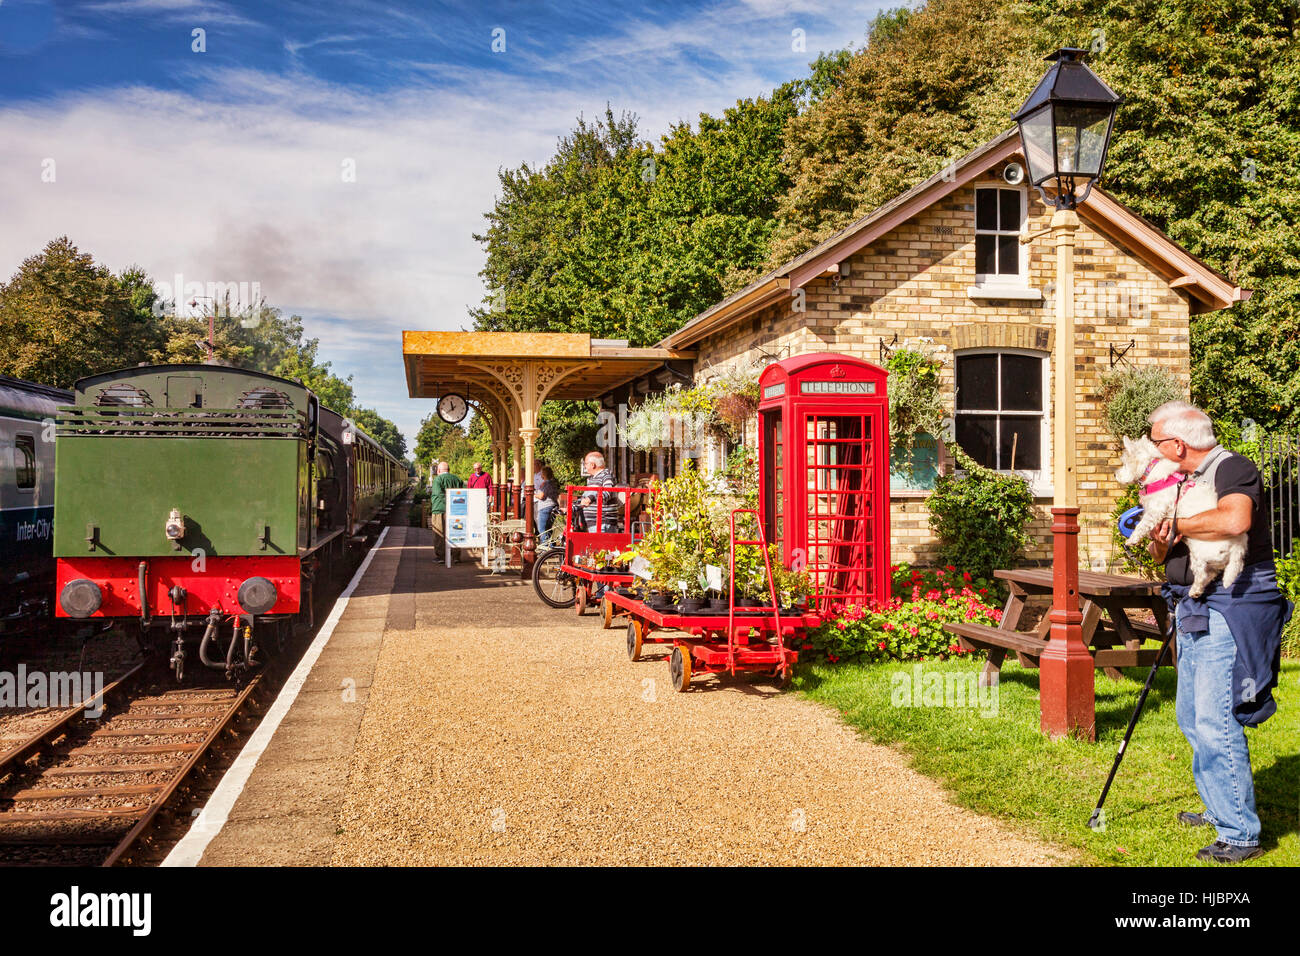 Steam train of the Nene Valley Railway at Ferry Meadows Station, near Peterborough, Cambridgeshire, England, UK - Stock Image